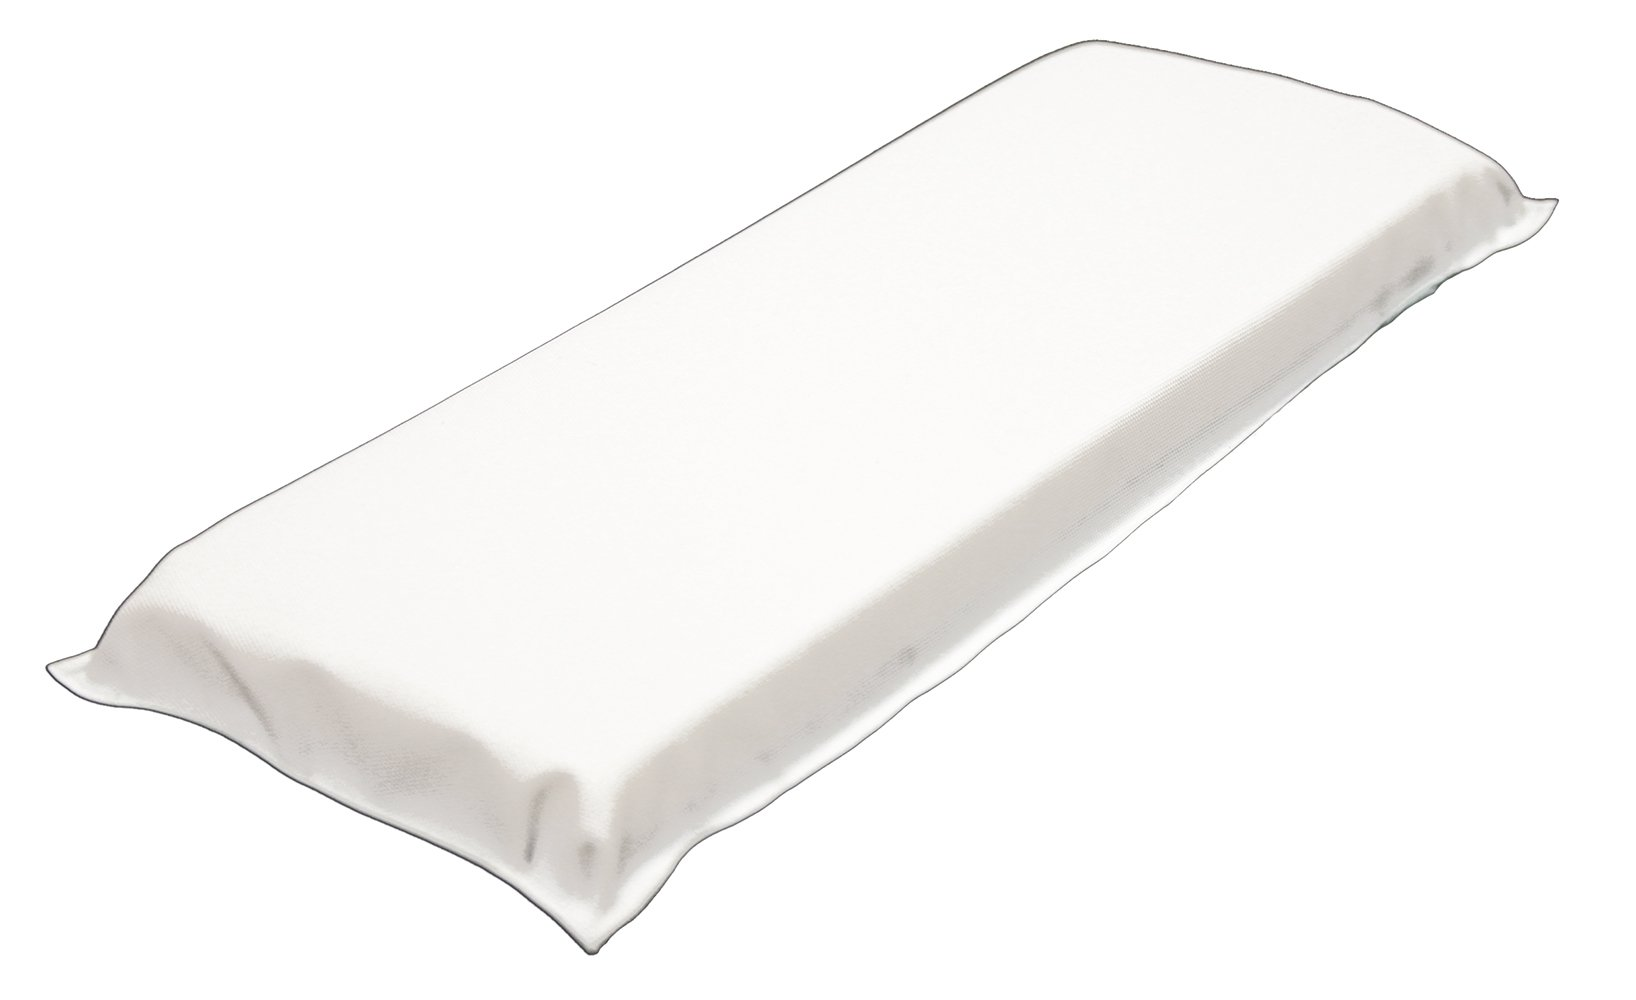 PDC Healthcare 45010-11-MPF Arm Board, Disposable, Vinyl, Infant, 2'' x 6'', White (Pack of 50)